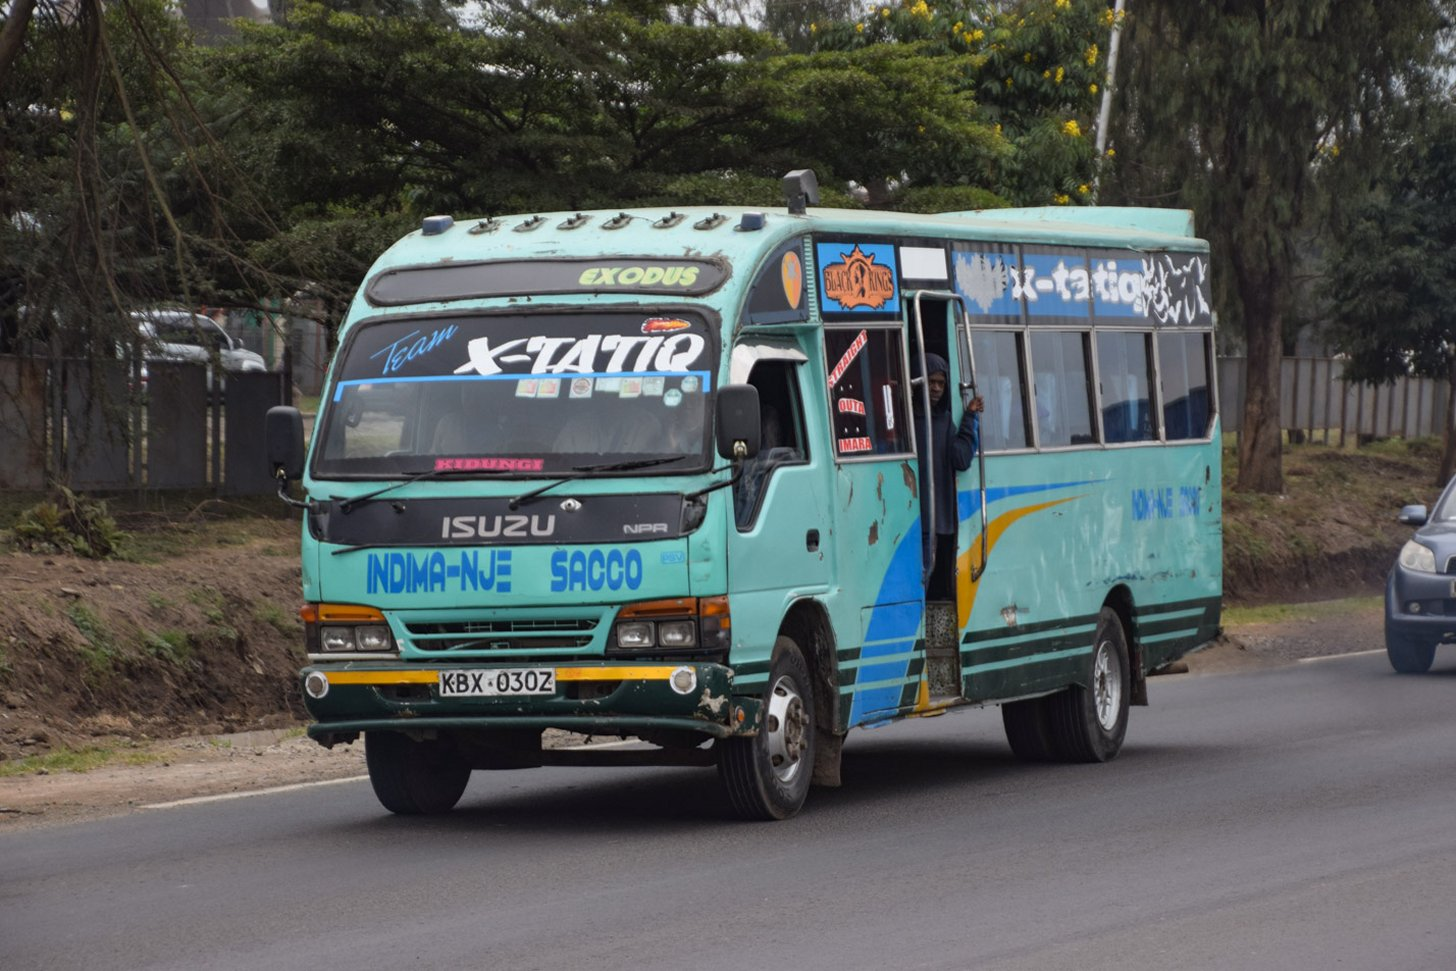 De lokale bus in Kenia